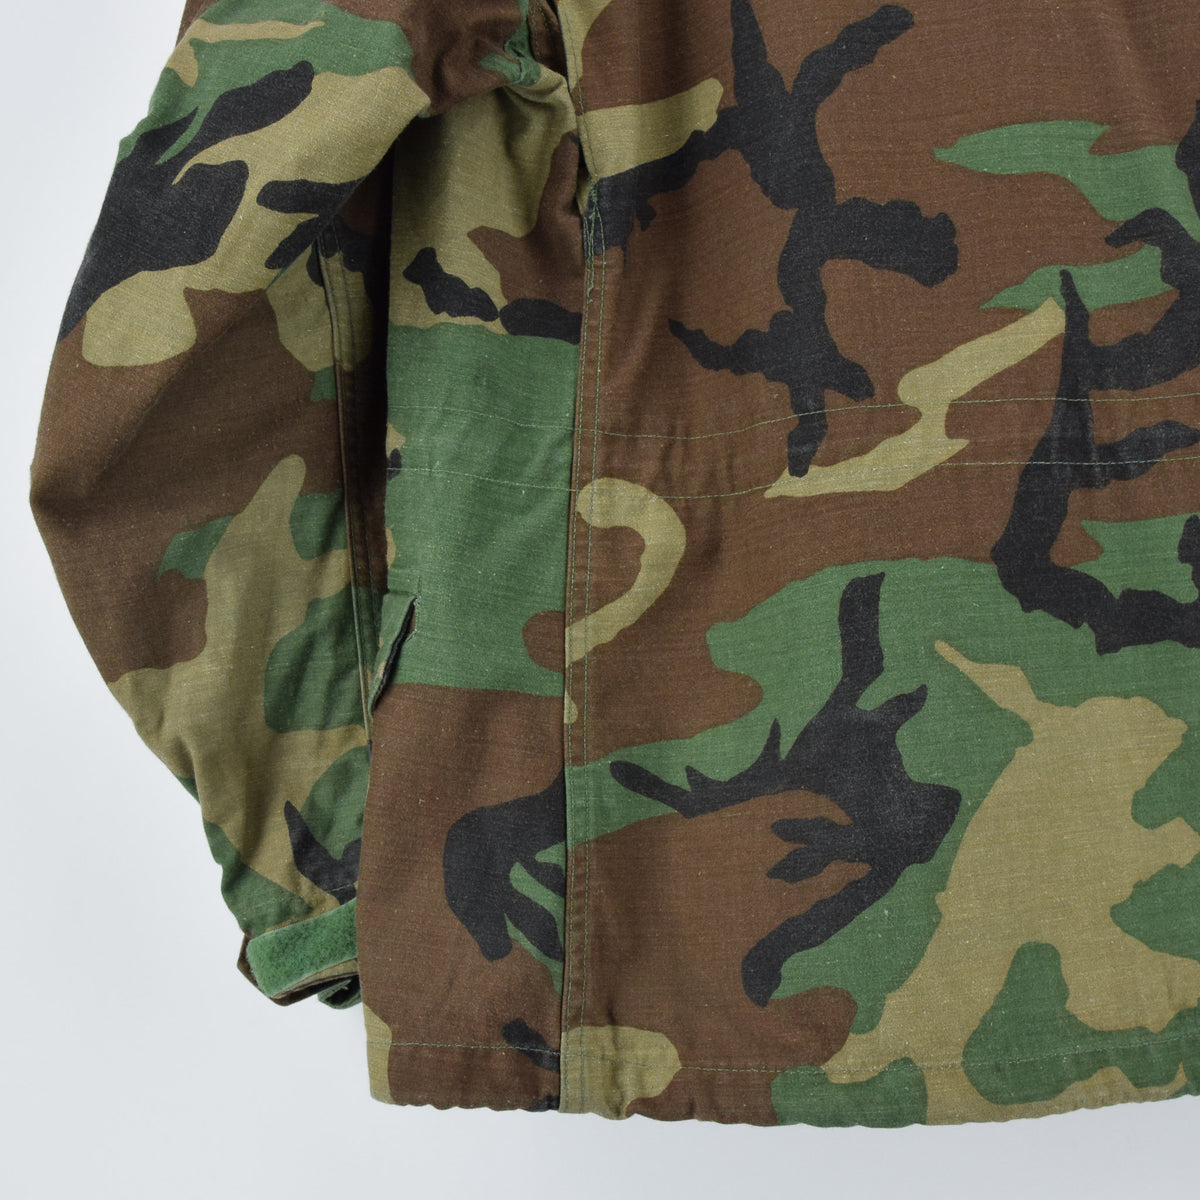 Vintage 80s M-65 Woodland Camouflage Field Coat Military US Air Force Jacket M back hem